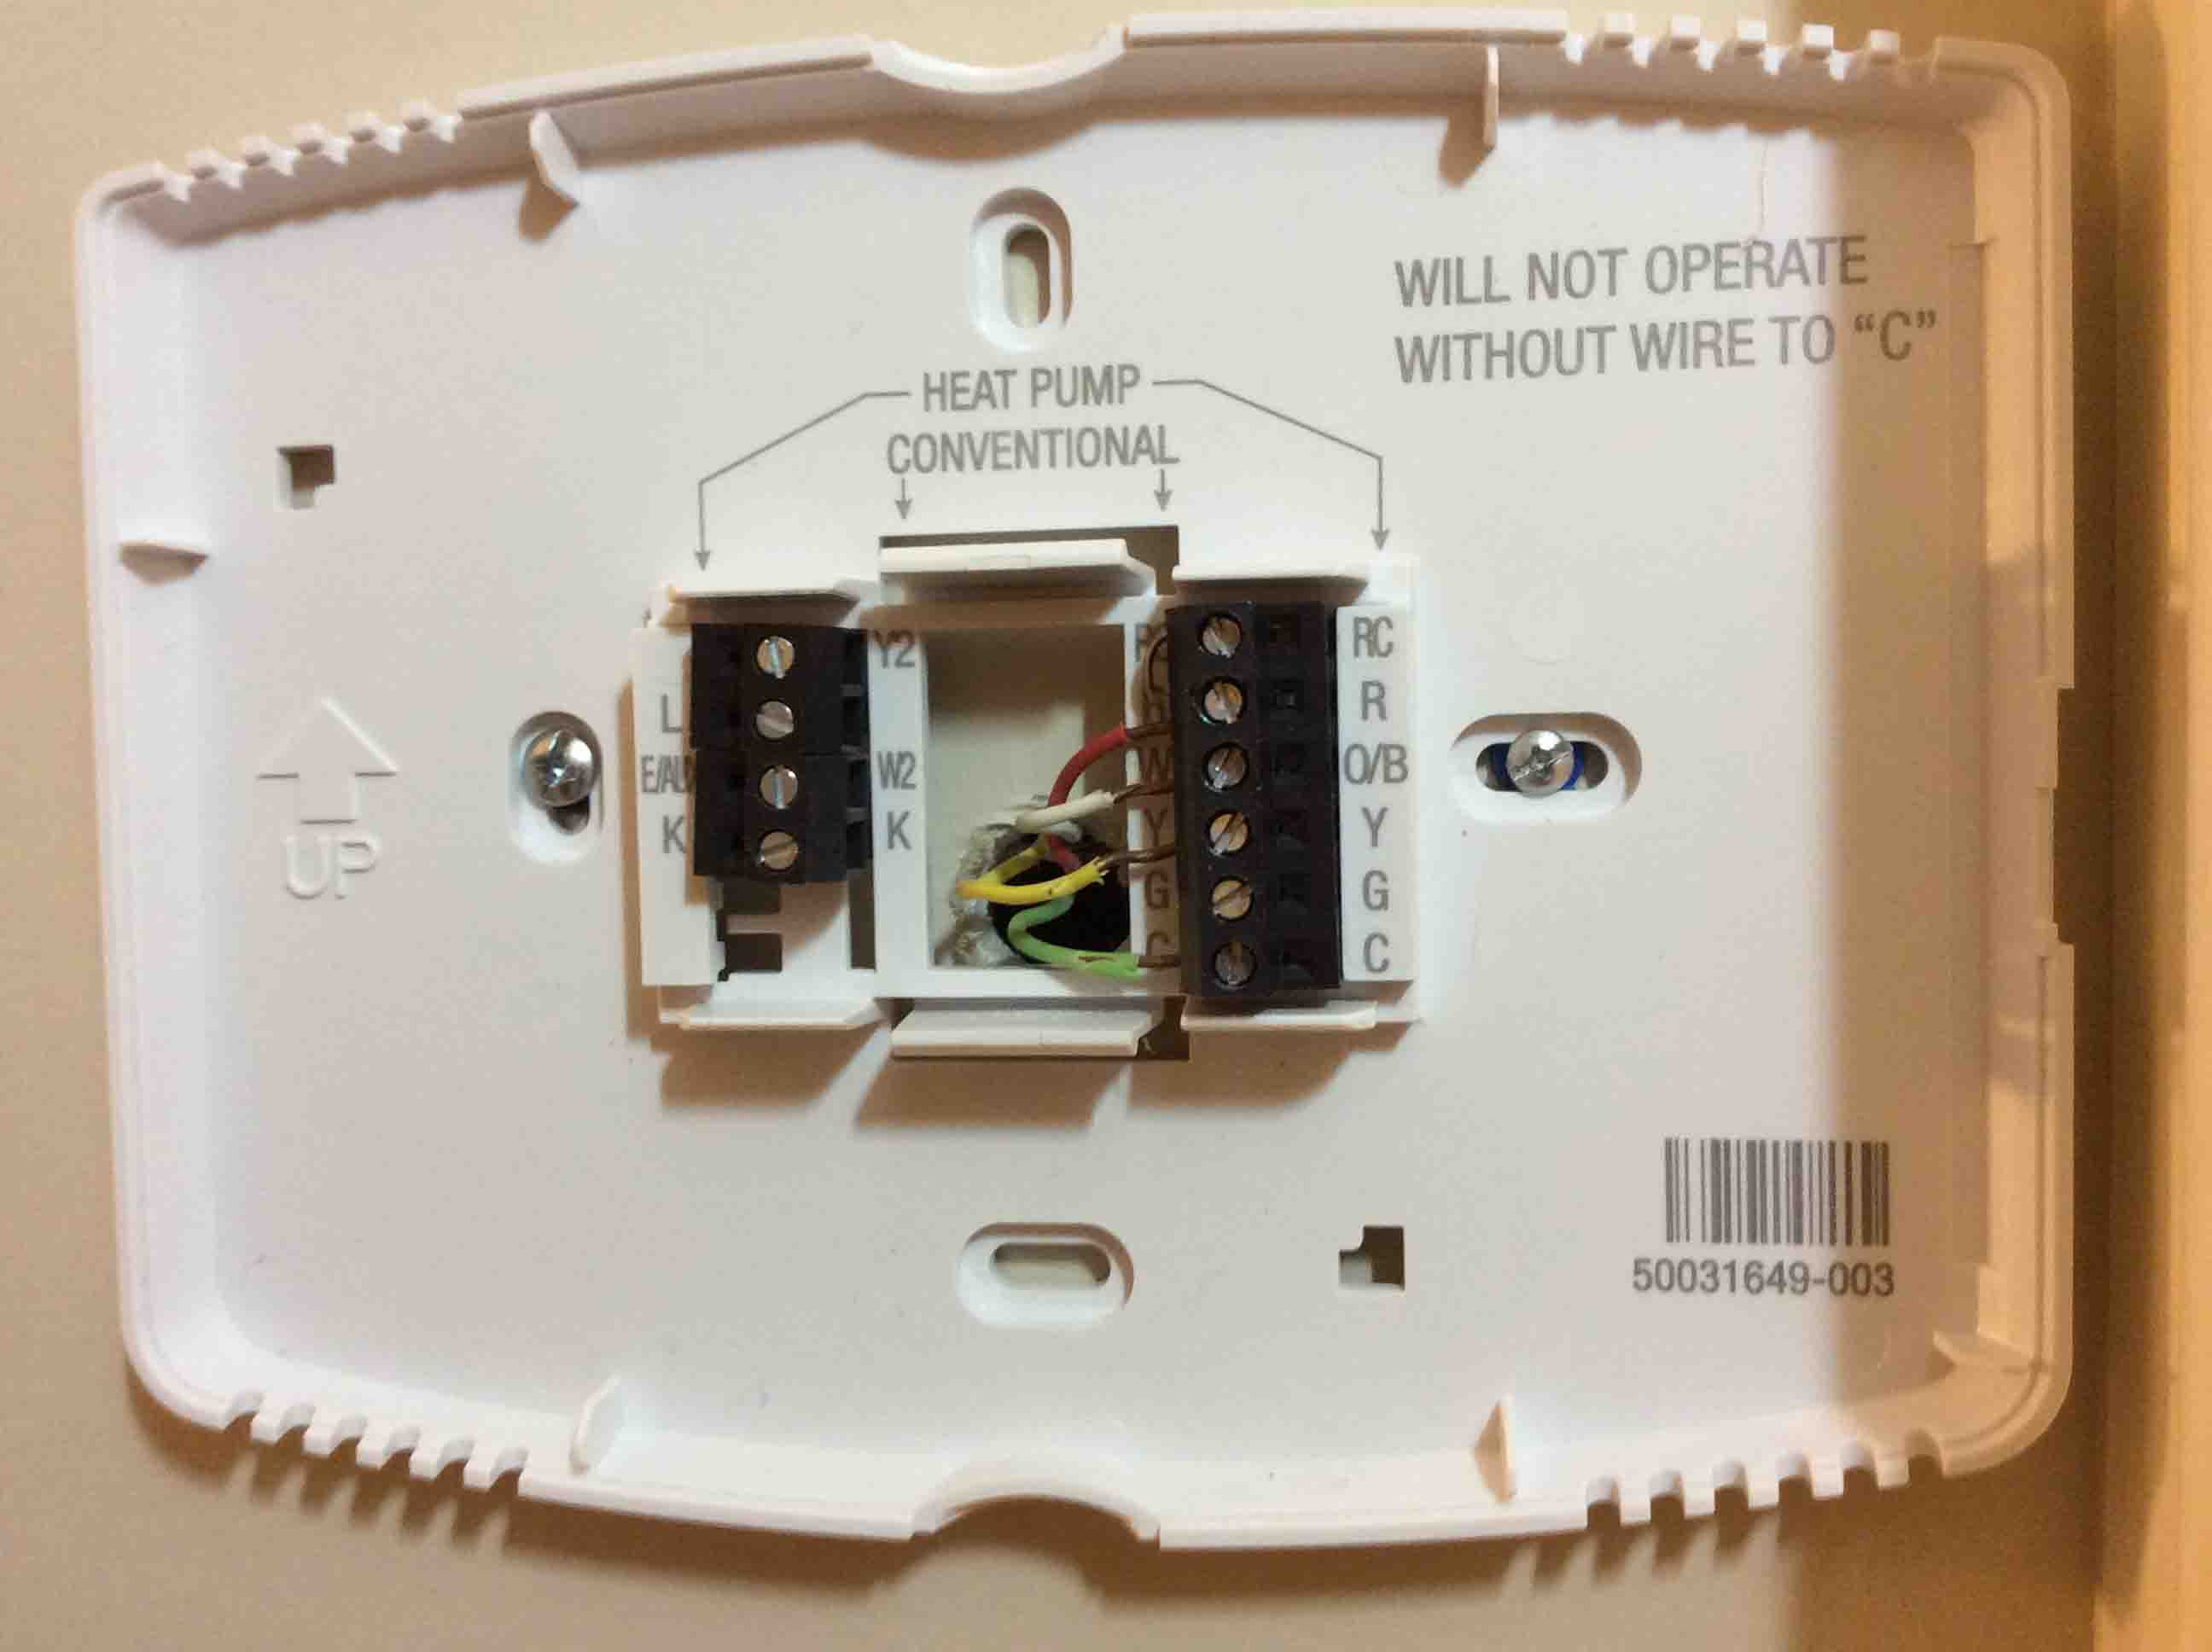 honeywell thermostat wiring diagram 4 wire tom's tek stop thermostat wiring diagram 2 stage fan honeywell thermostat wiring diagram 4 wire picture of the wall plate for a 4 wire